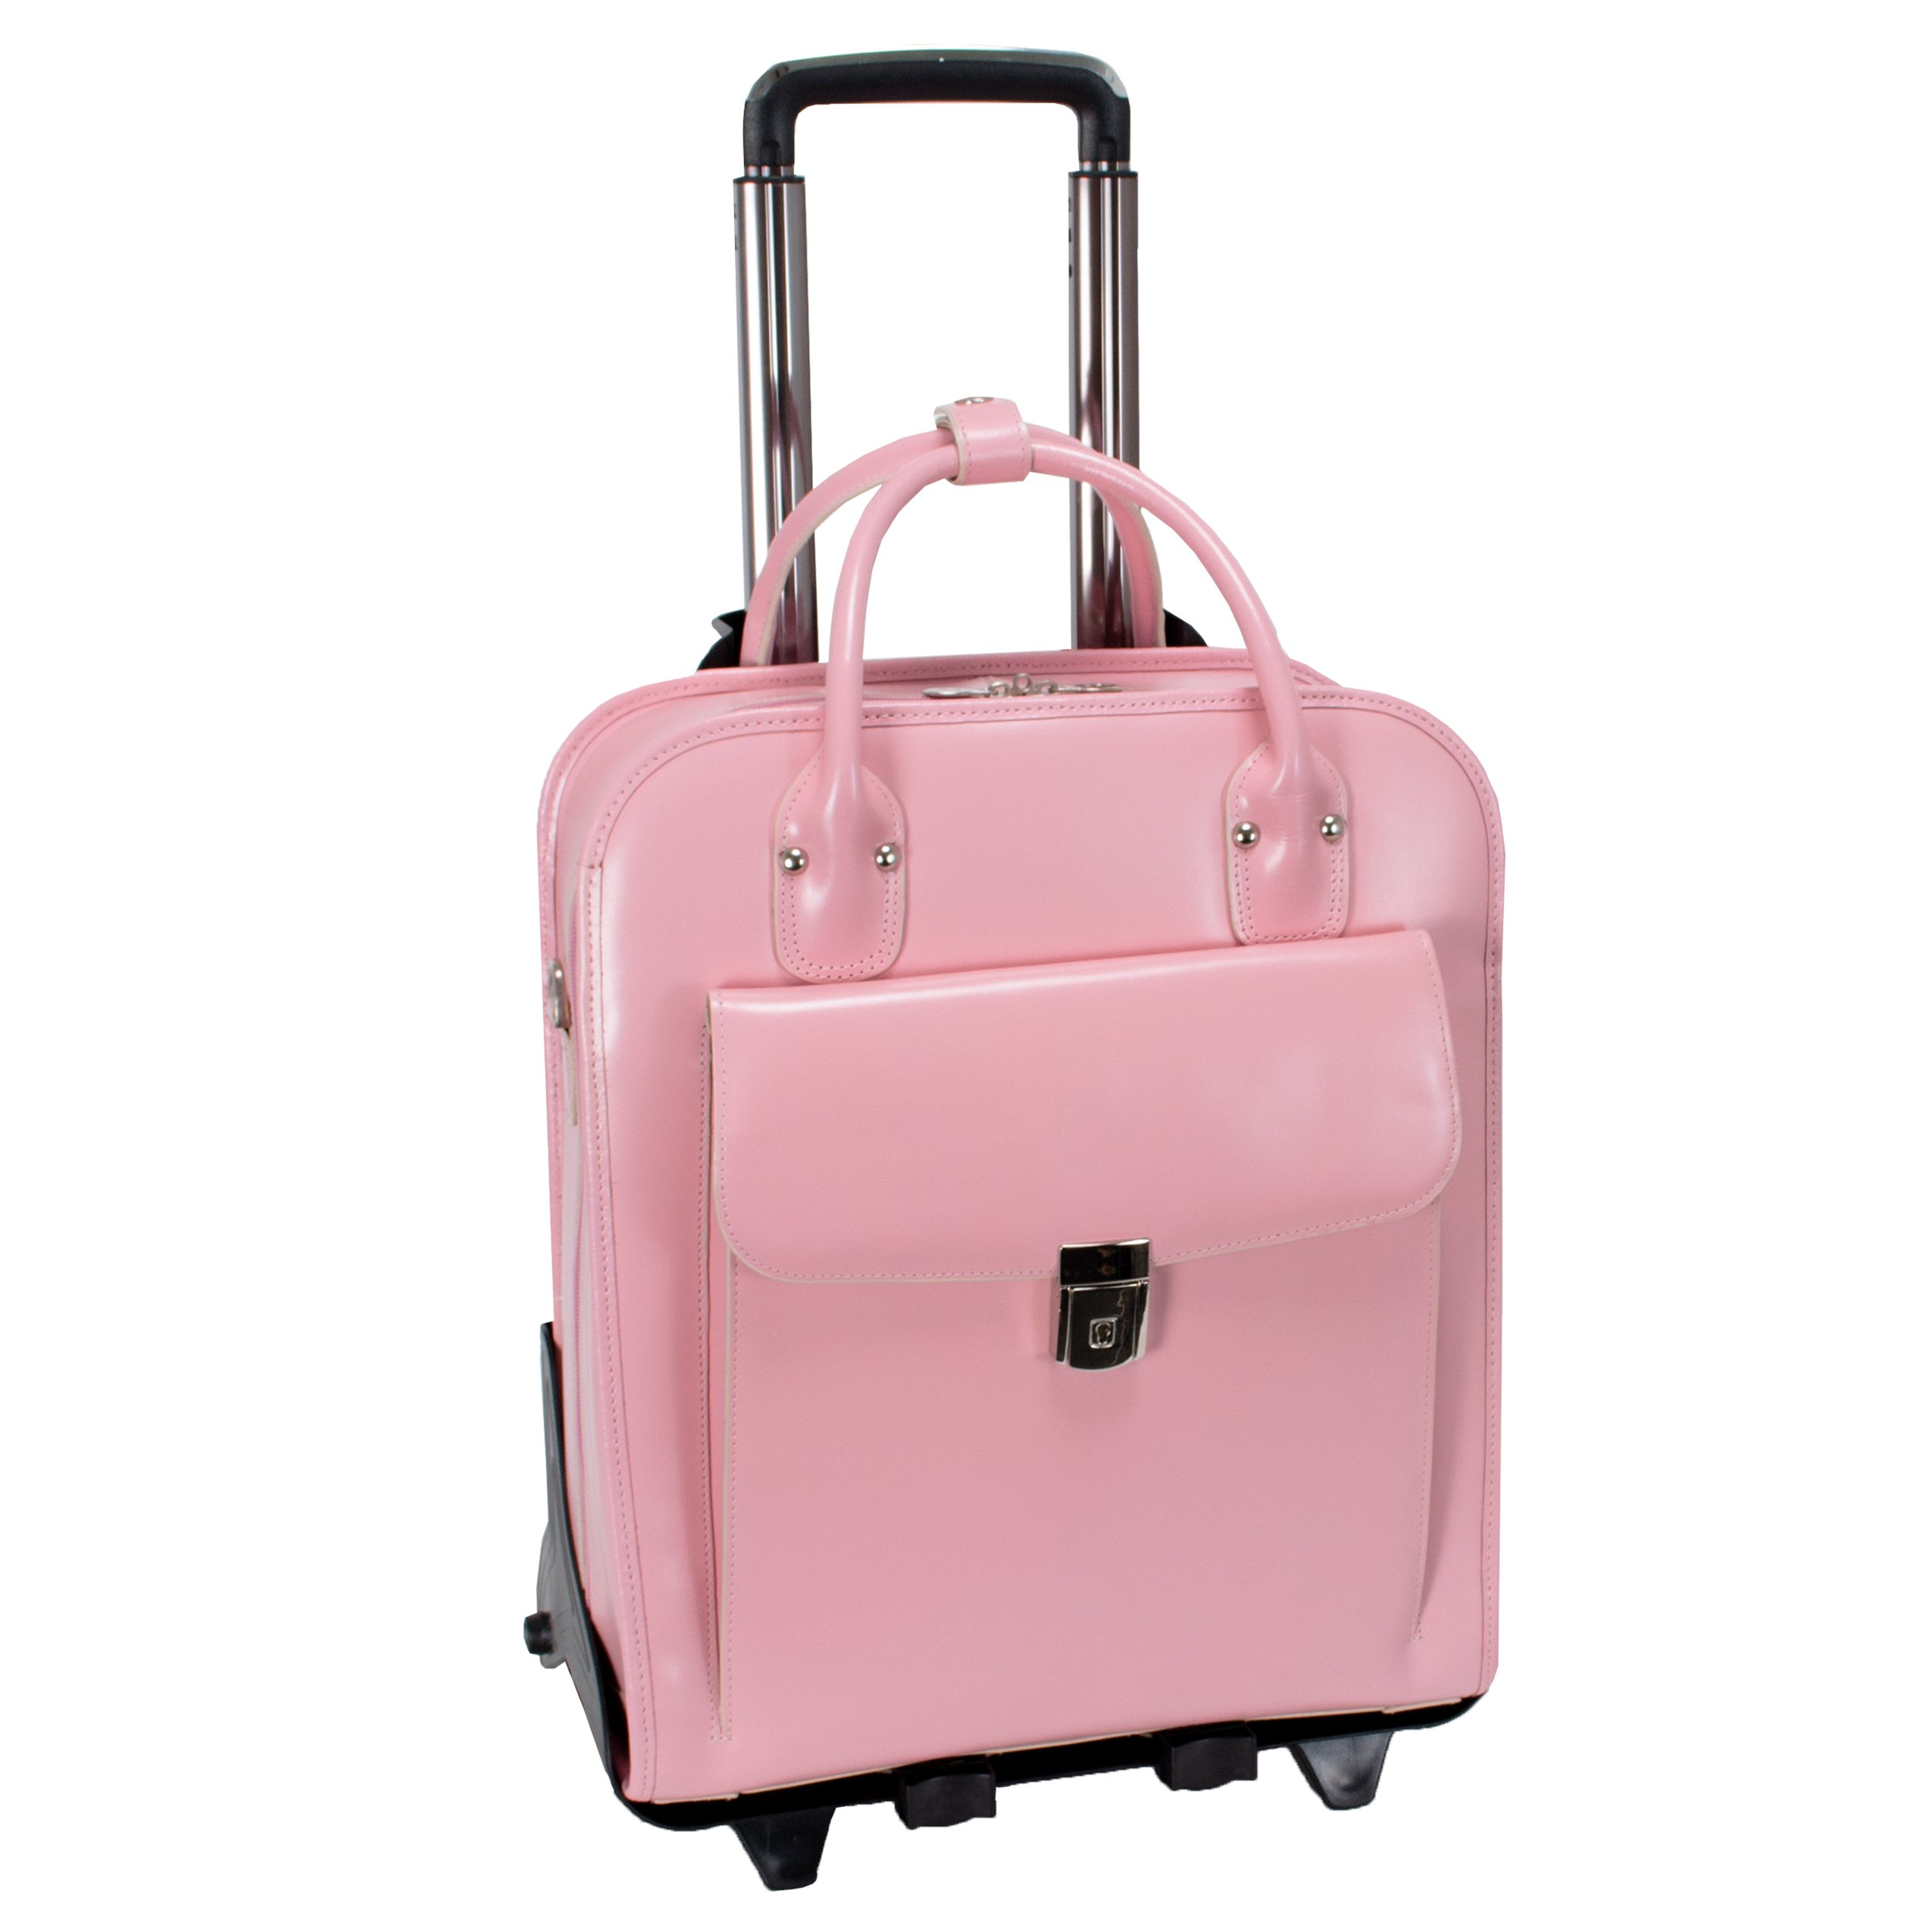 McKleinUSA LA GRANGE 96499 Pink Leather Vertical Detachable-Wheeled Ladies' Briefcase